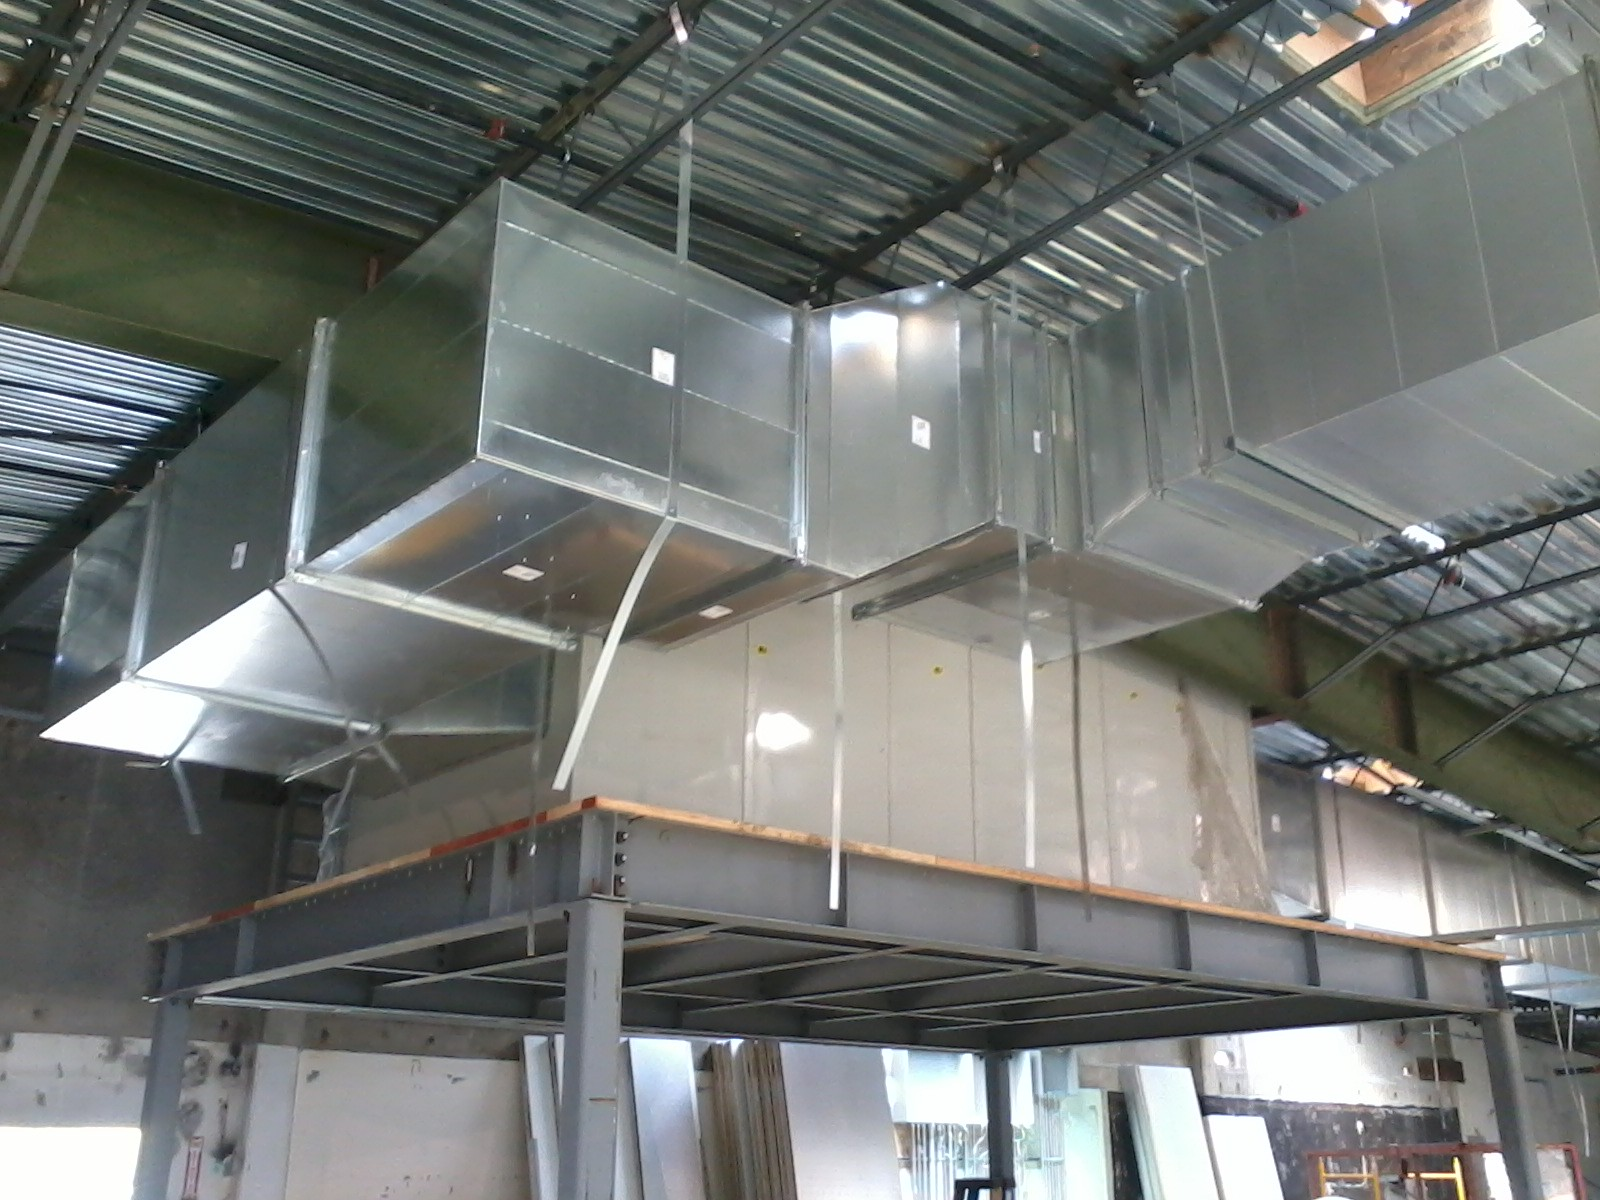 builders of quality hvac systems - Hvac Systems